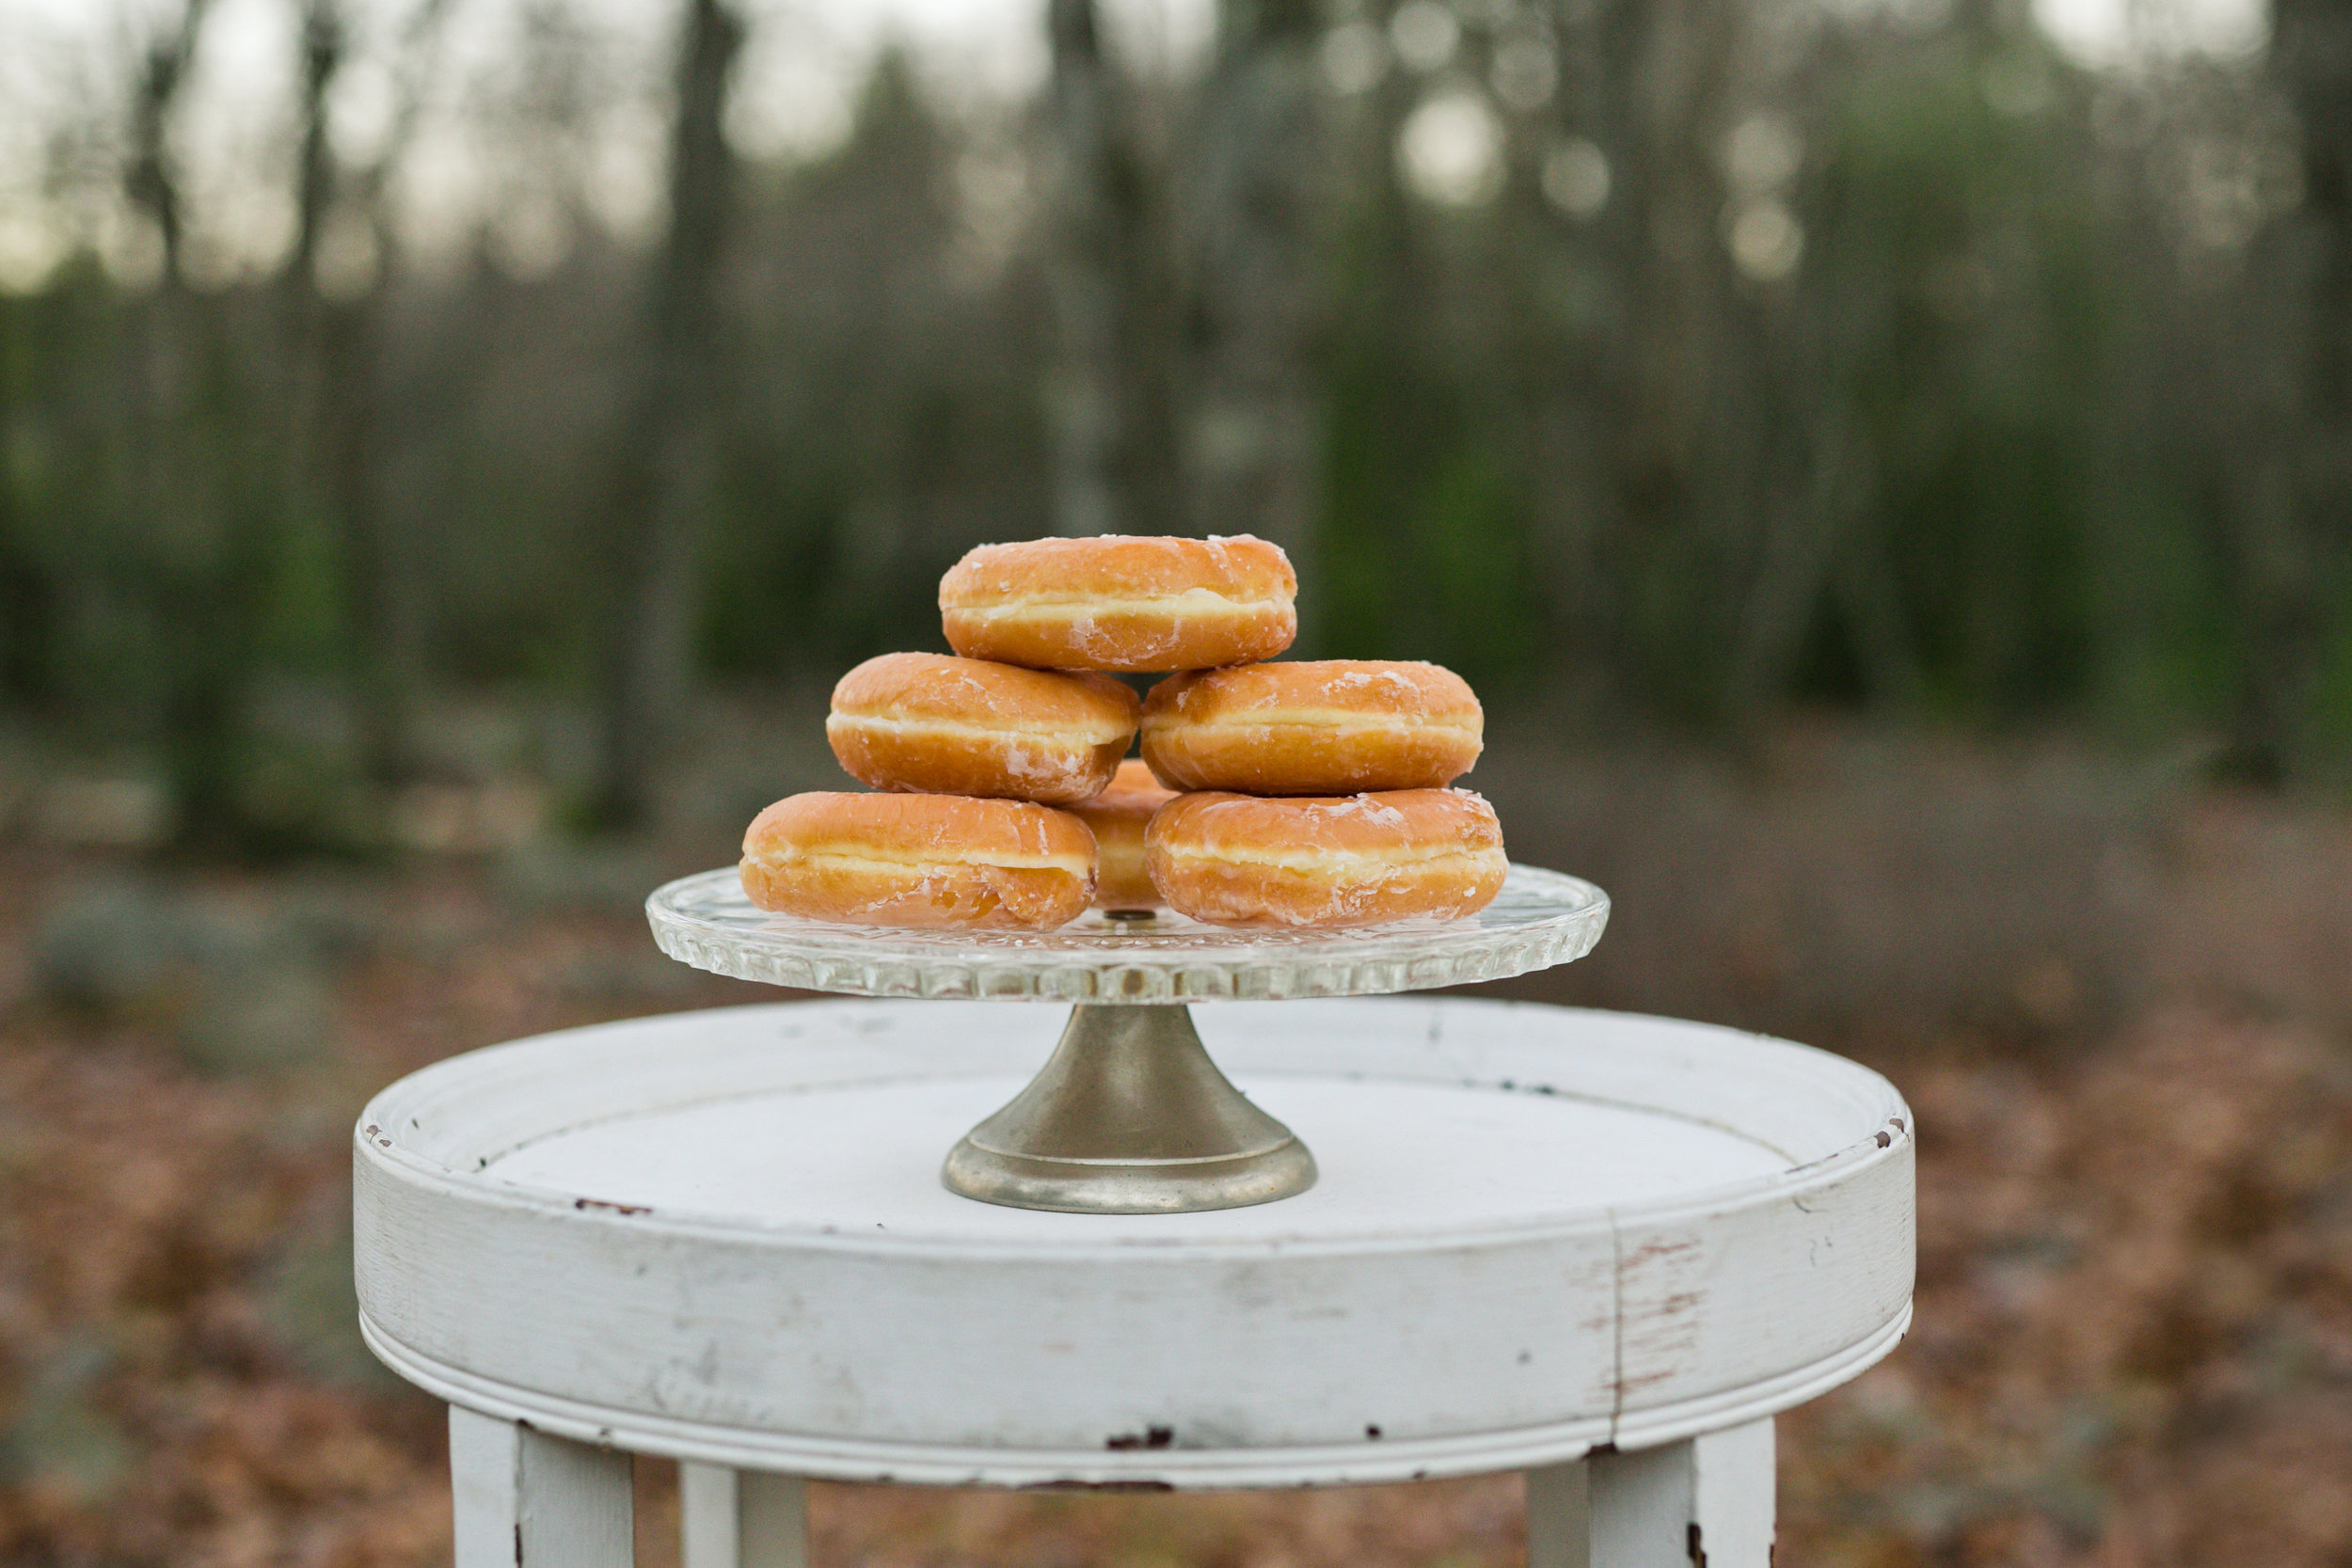 A donut cake at an elopement shoot, because why not? Photo by Kelley Spurlock.